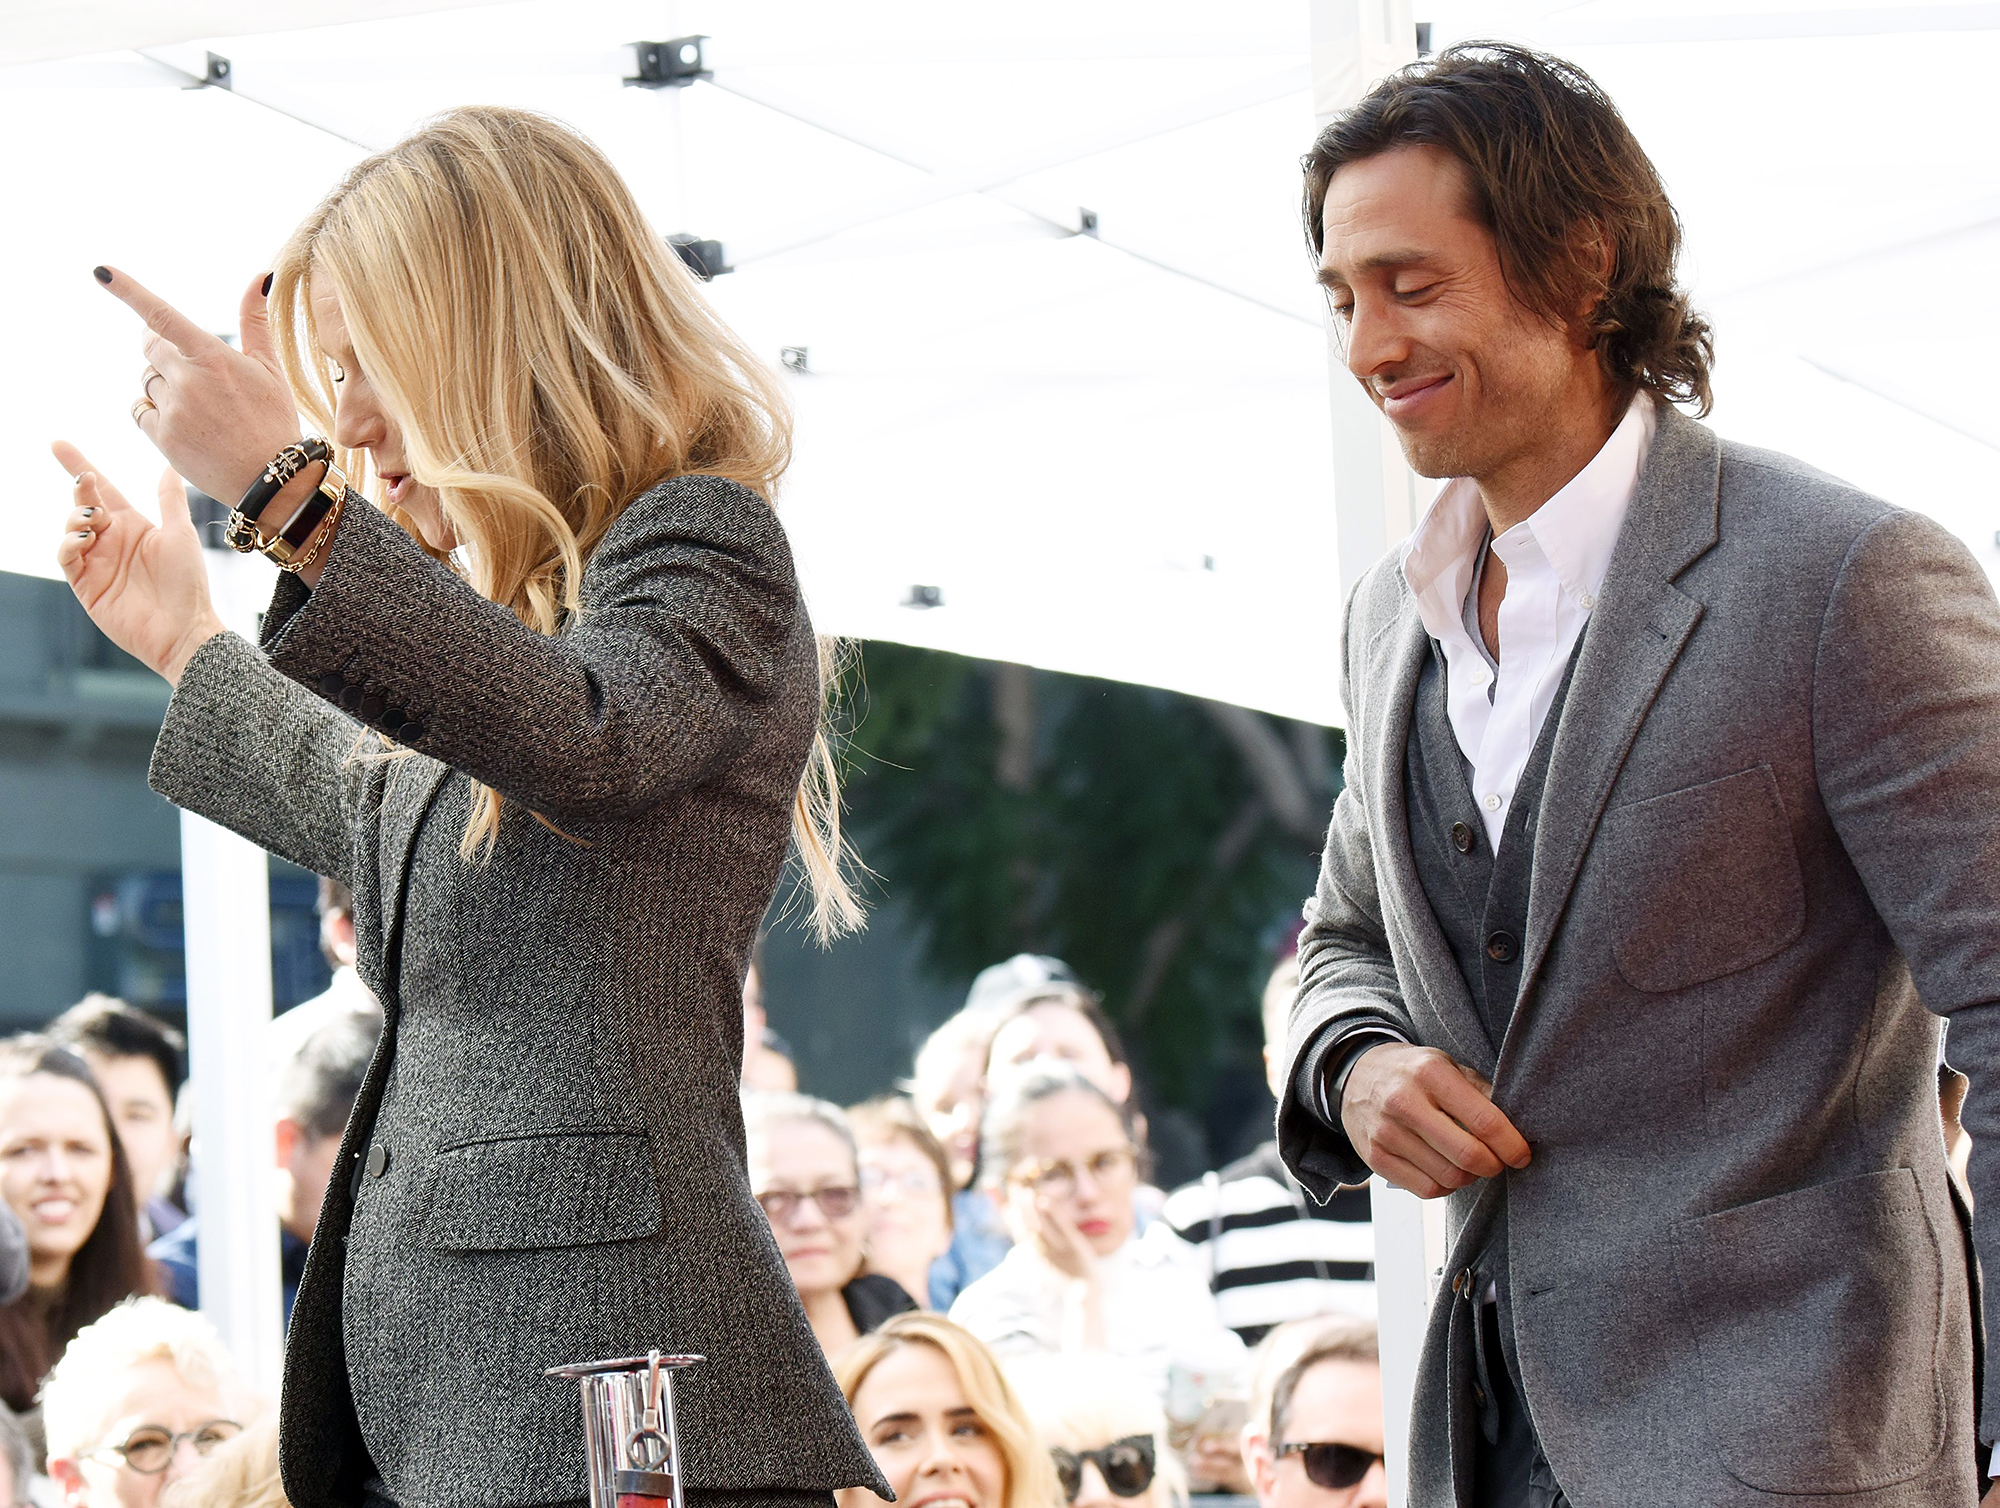 Gwyneth Paltrow Brad Falchuk Praise Ryan Murphy For Introducing Them - Paltrow — showing off a glimpse of her wedding ring — and Falchuk looked in sync while rocking gray suits at the event.